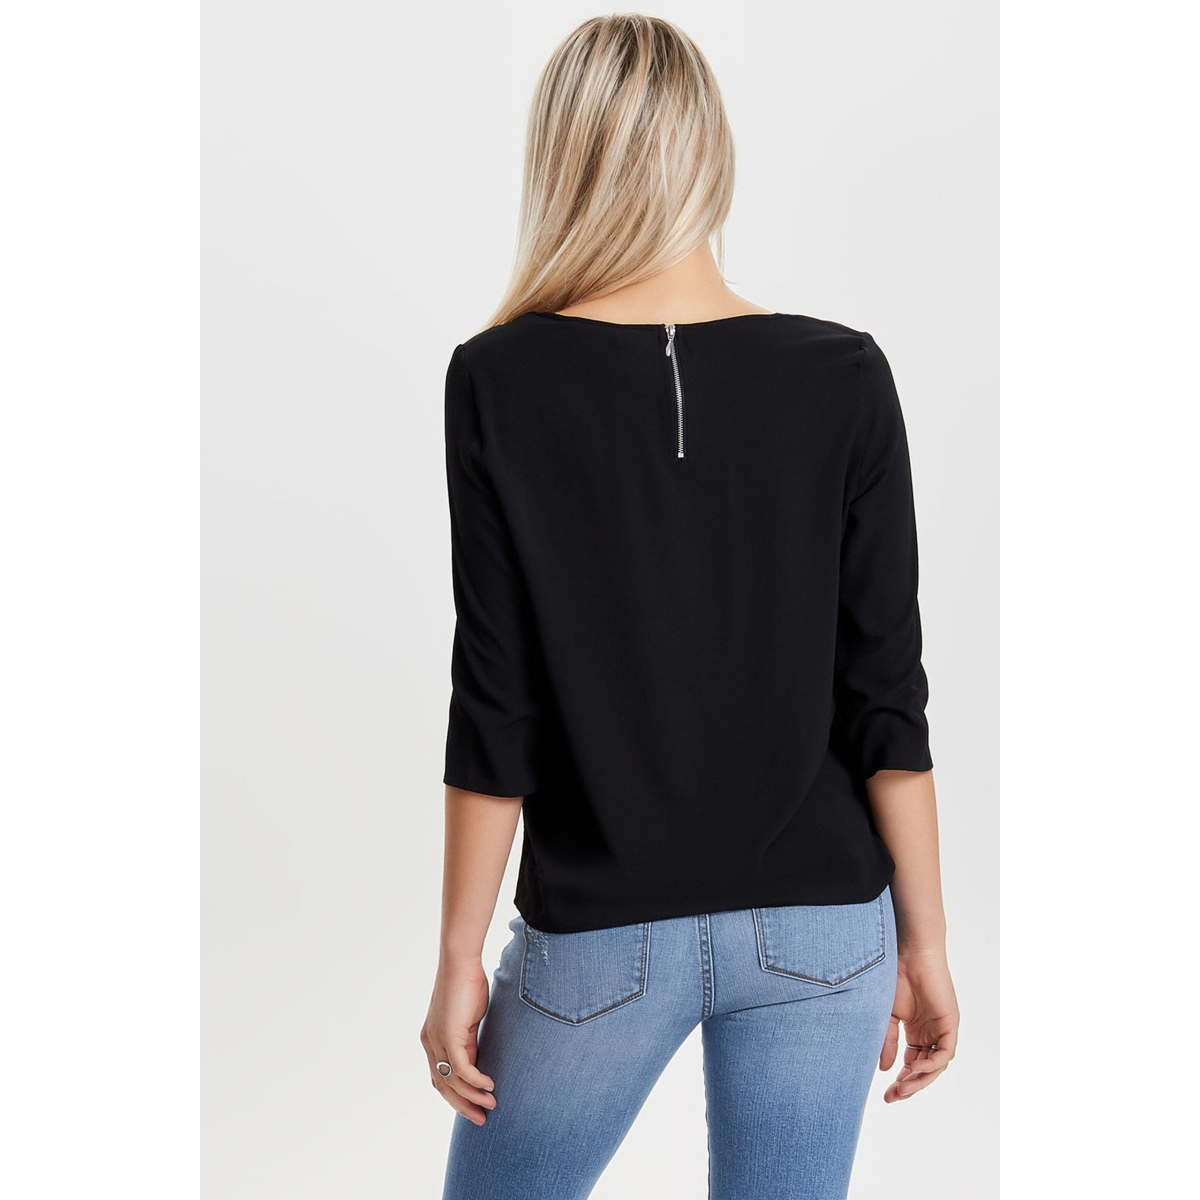 onlvic 3/4 solid top noos wvn 15150195 only t-shirt black